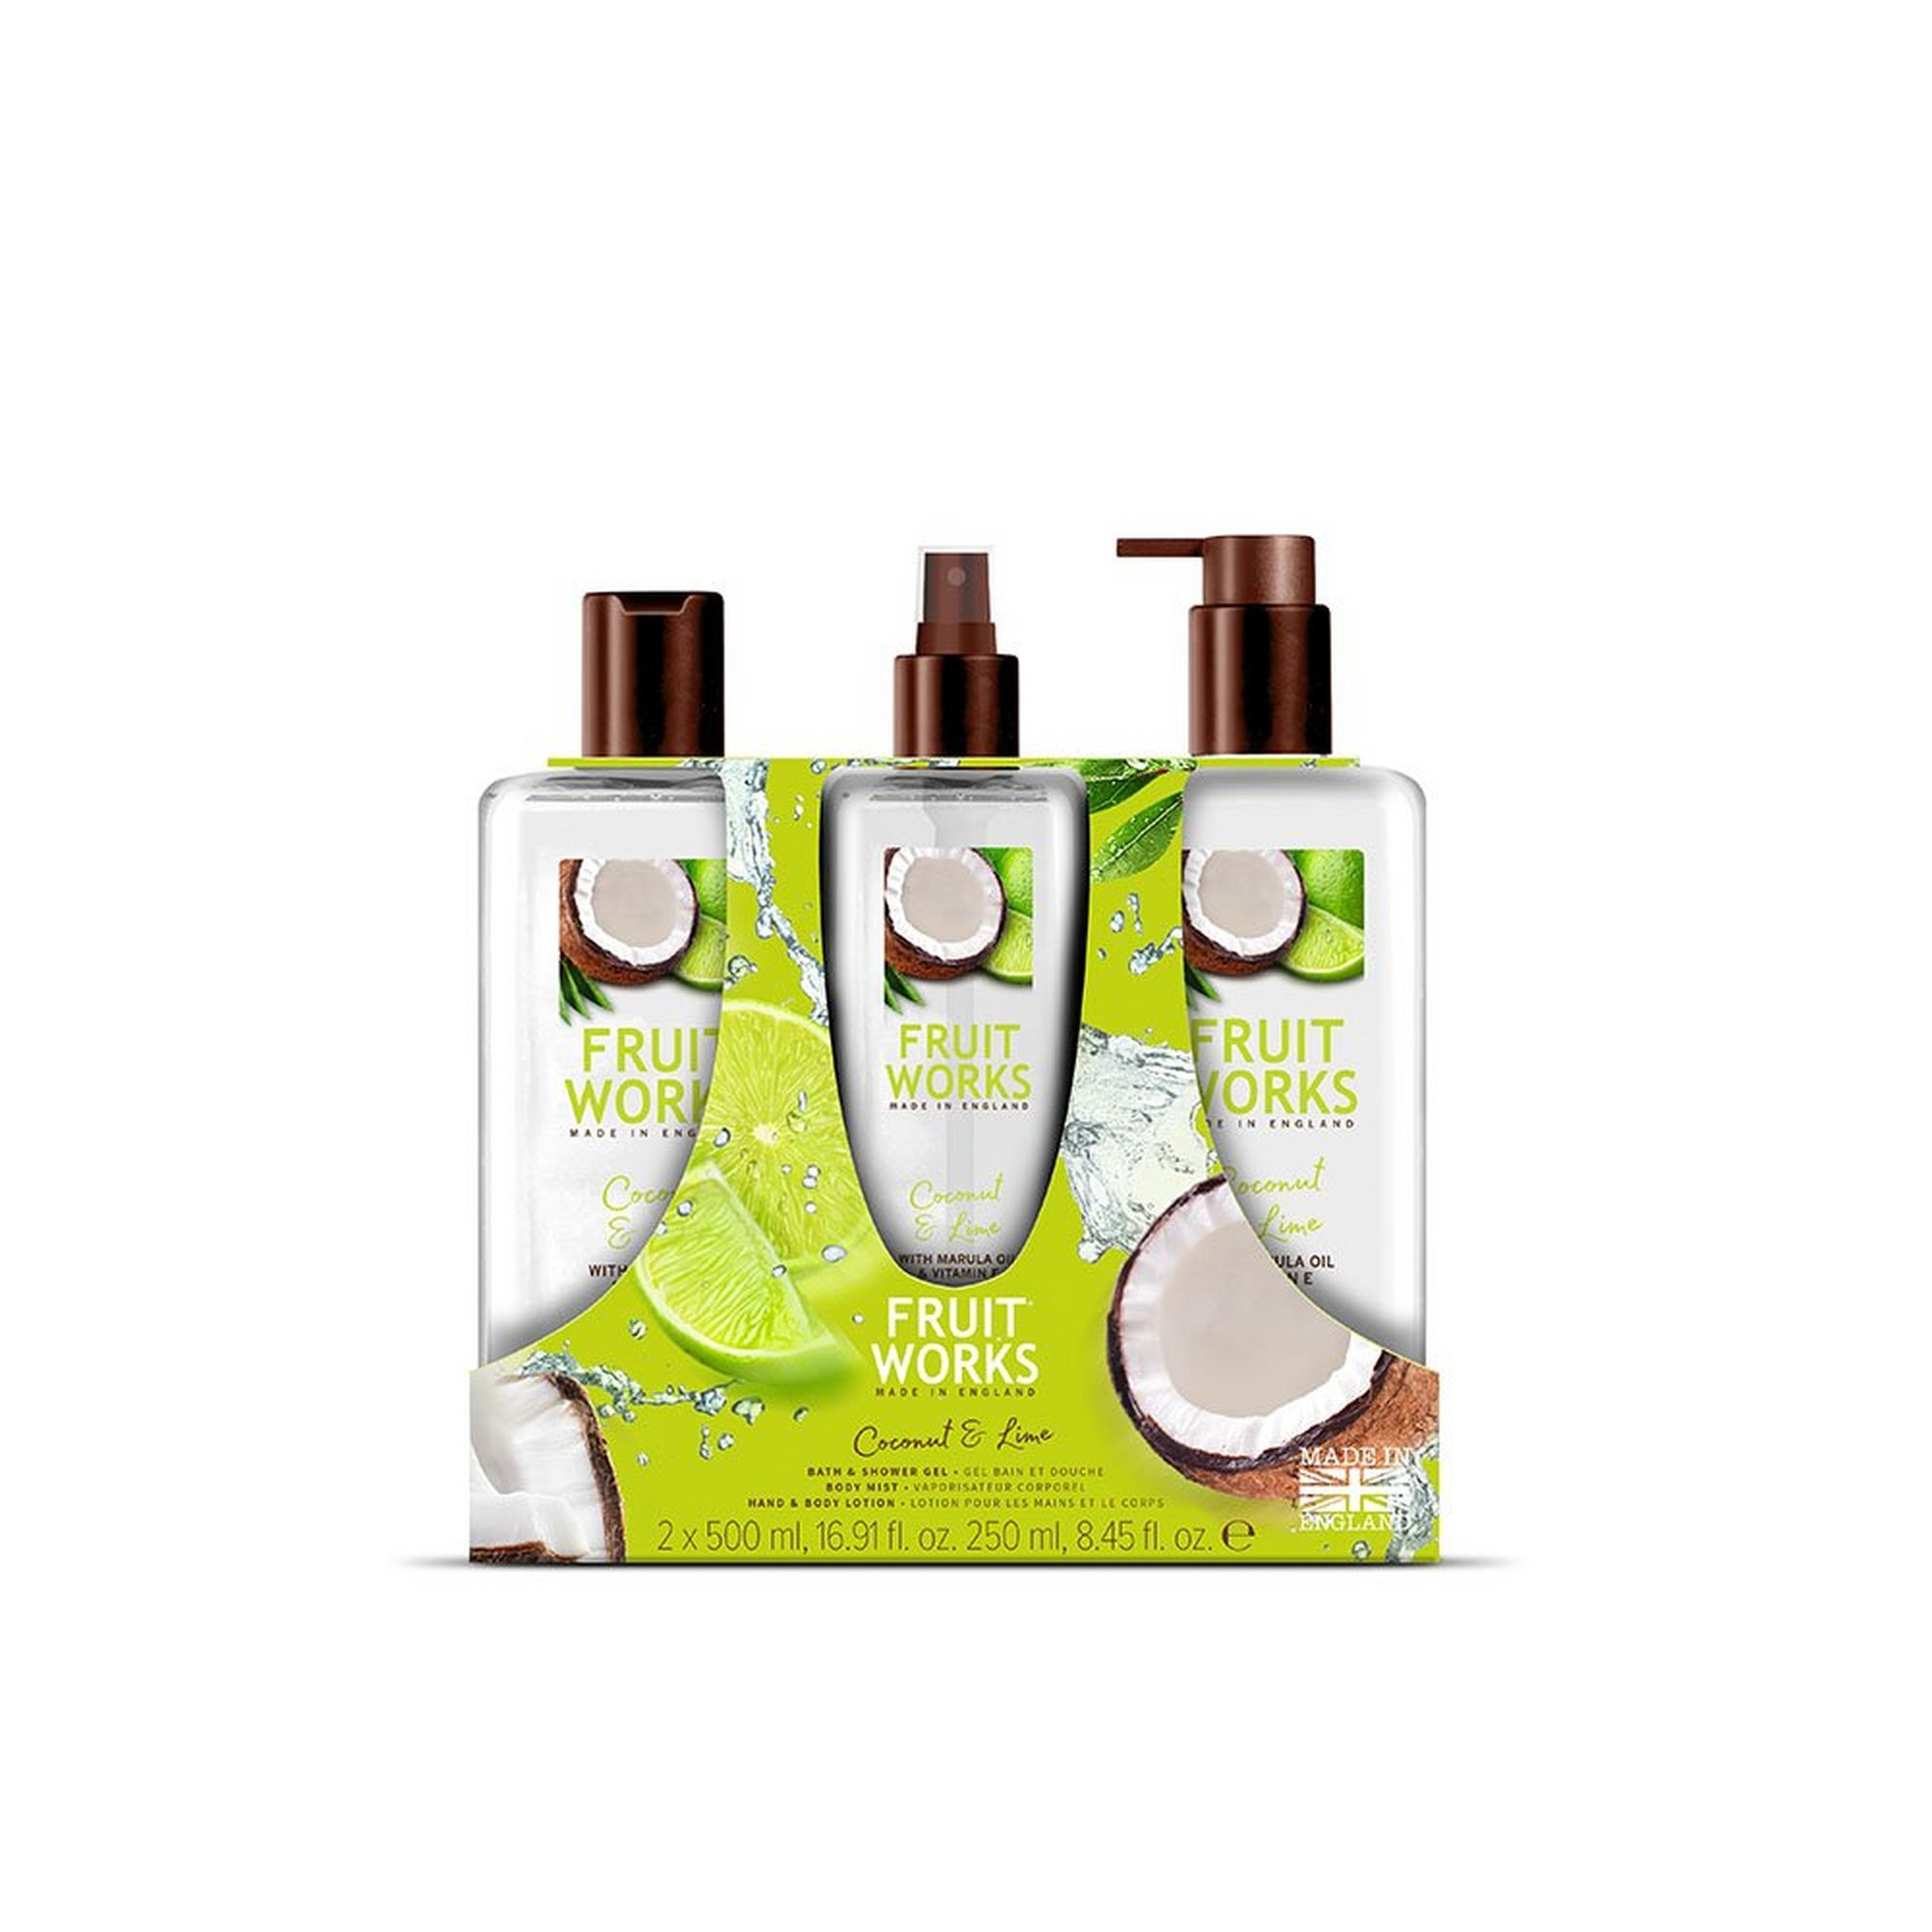 Image of Grace Cole Coconut and Lime Fruit Works Gift Set